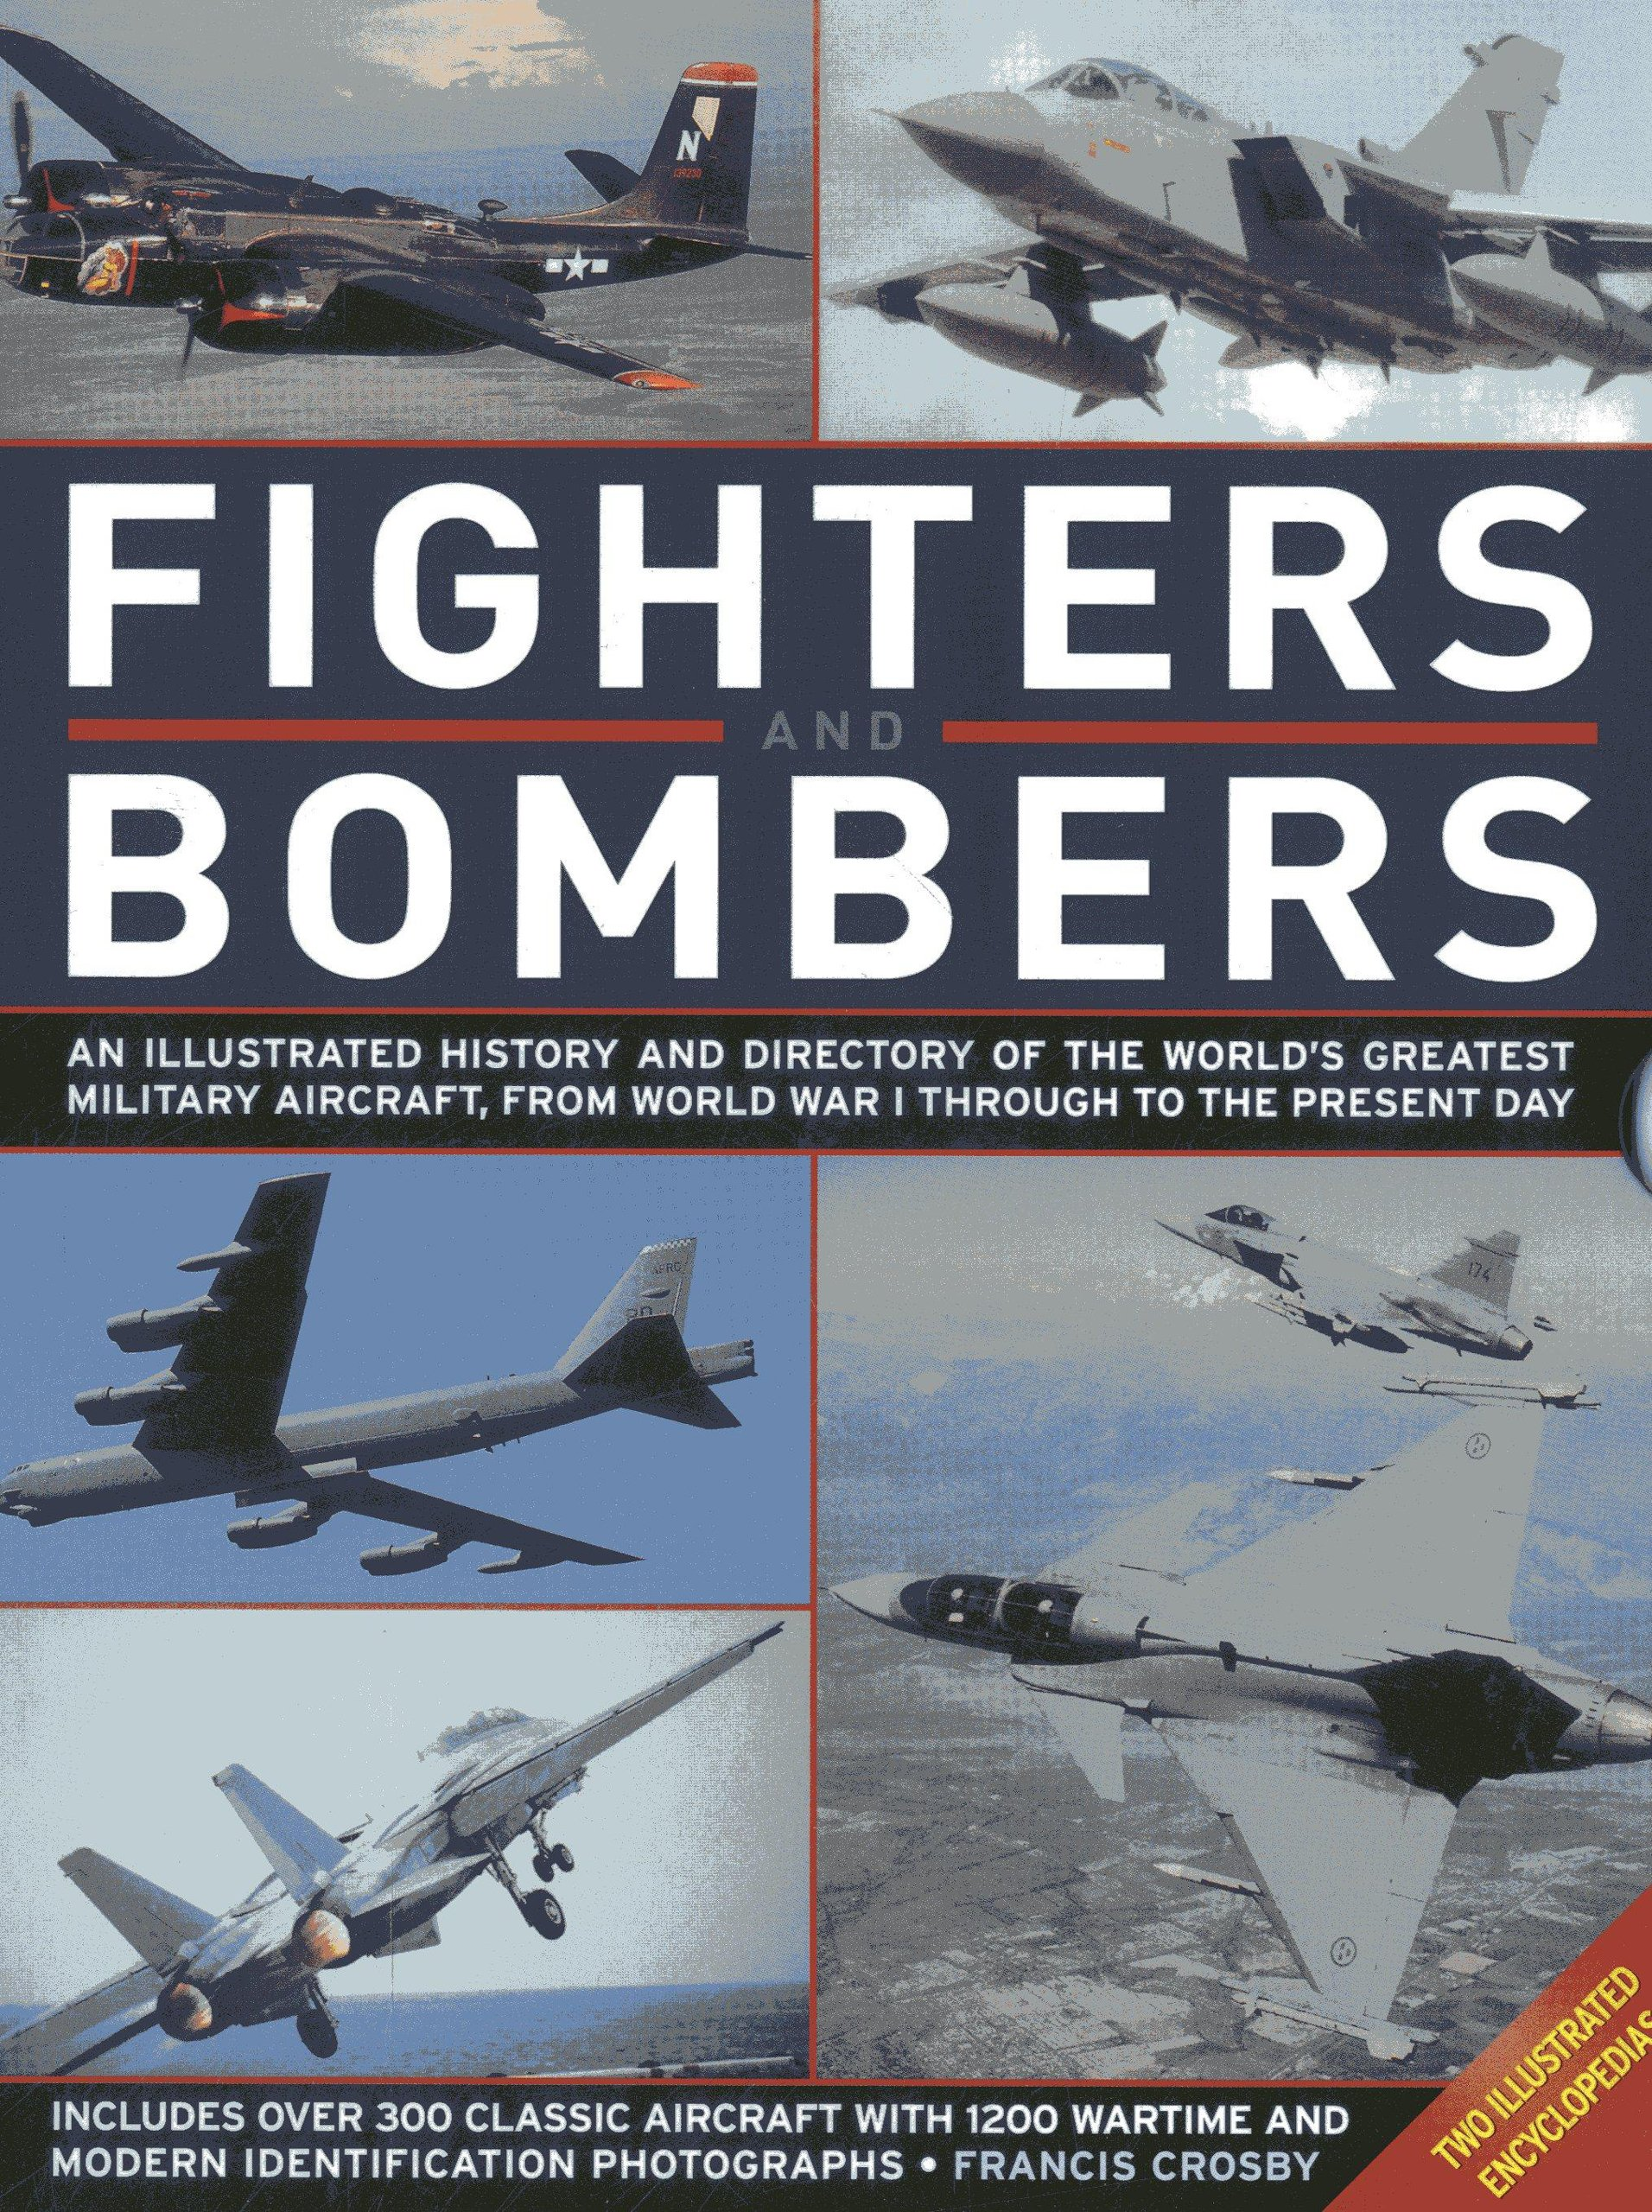 Fighters and Bombers: Two Illustrated Encyclopedias: A history and directory of the world's greatest military aircarft, from World War I through to the present day